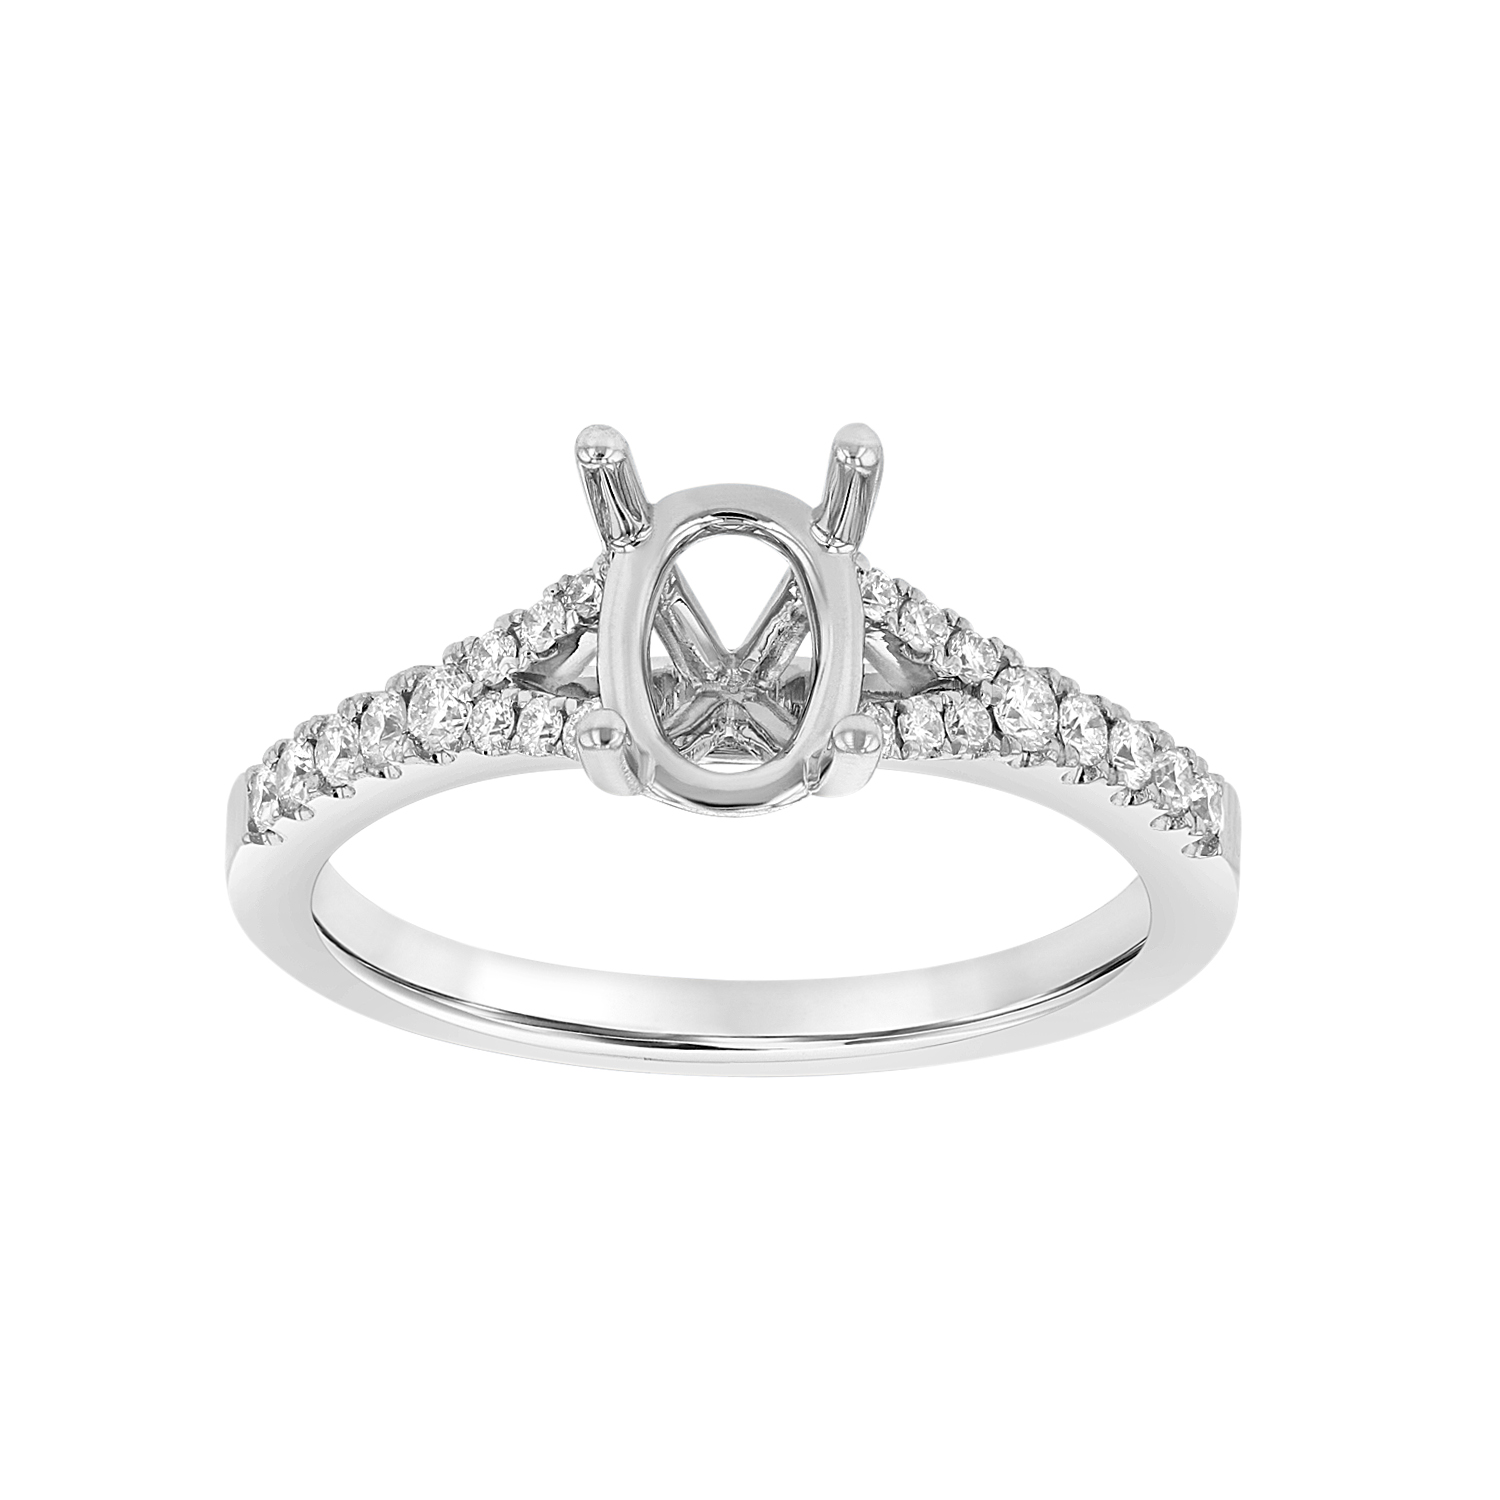 0.28ctw Diamond Semi Mount Engagement Ring in 18k White Gold